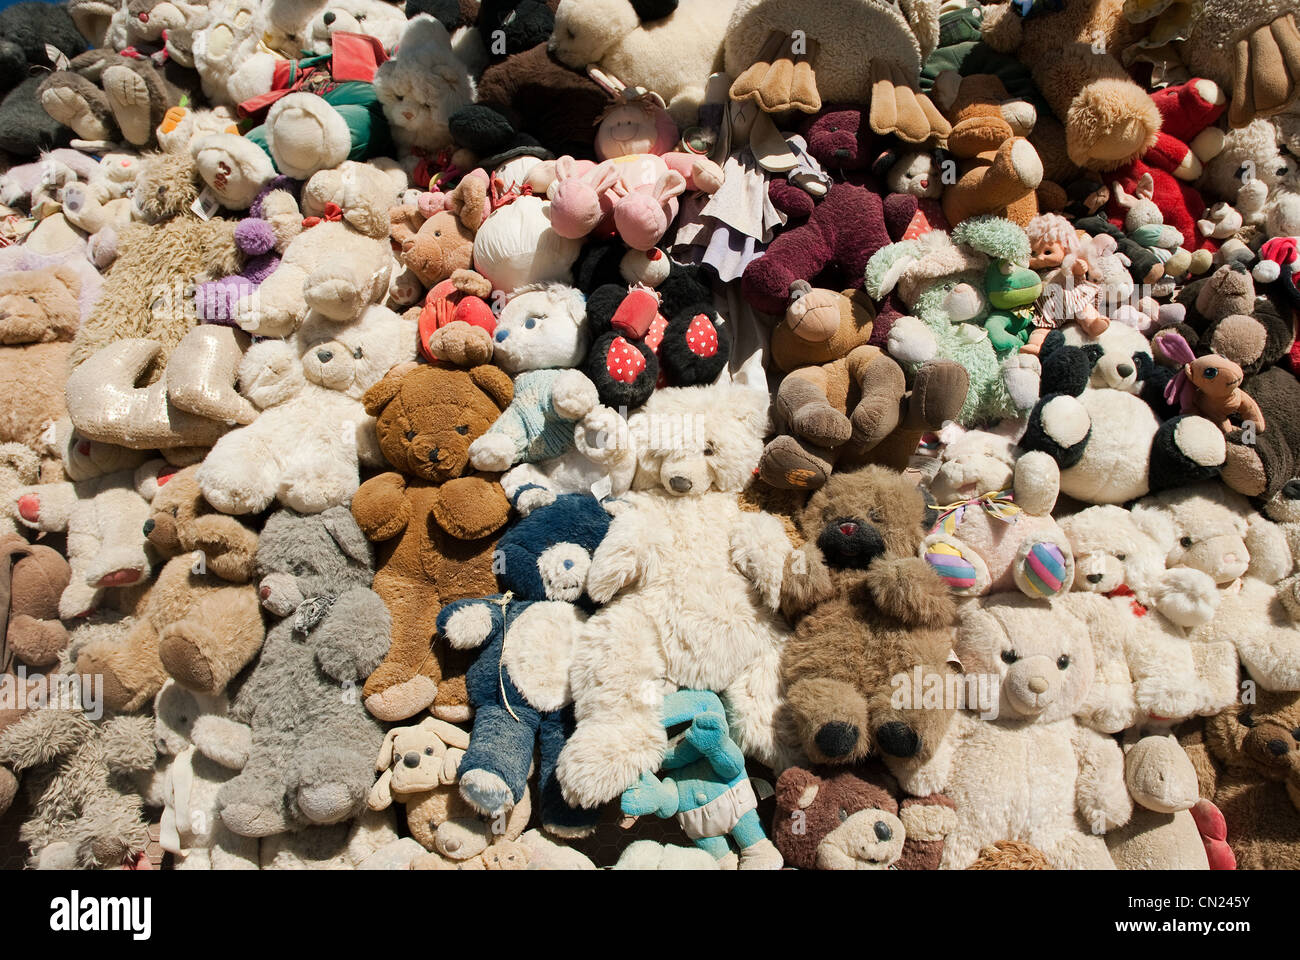 Large group of teddy bears - Stock Image